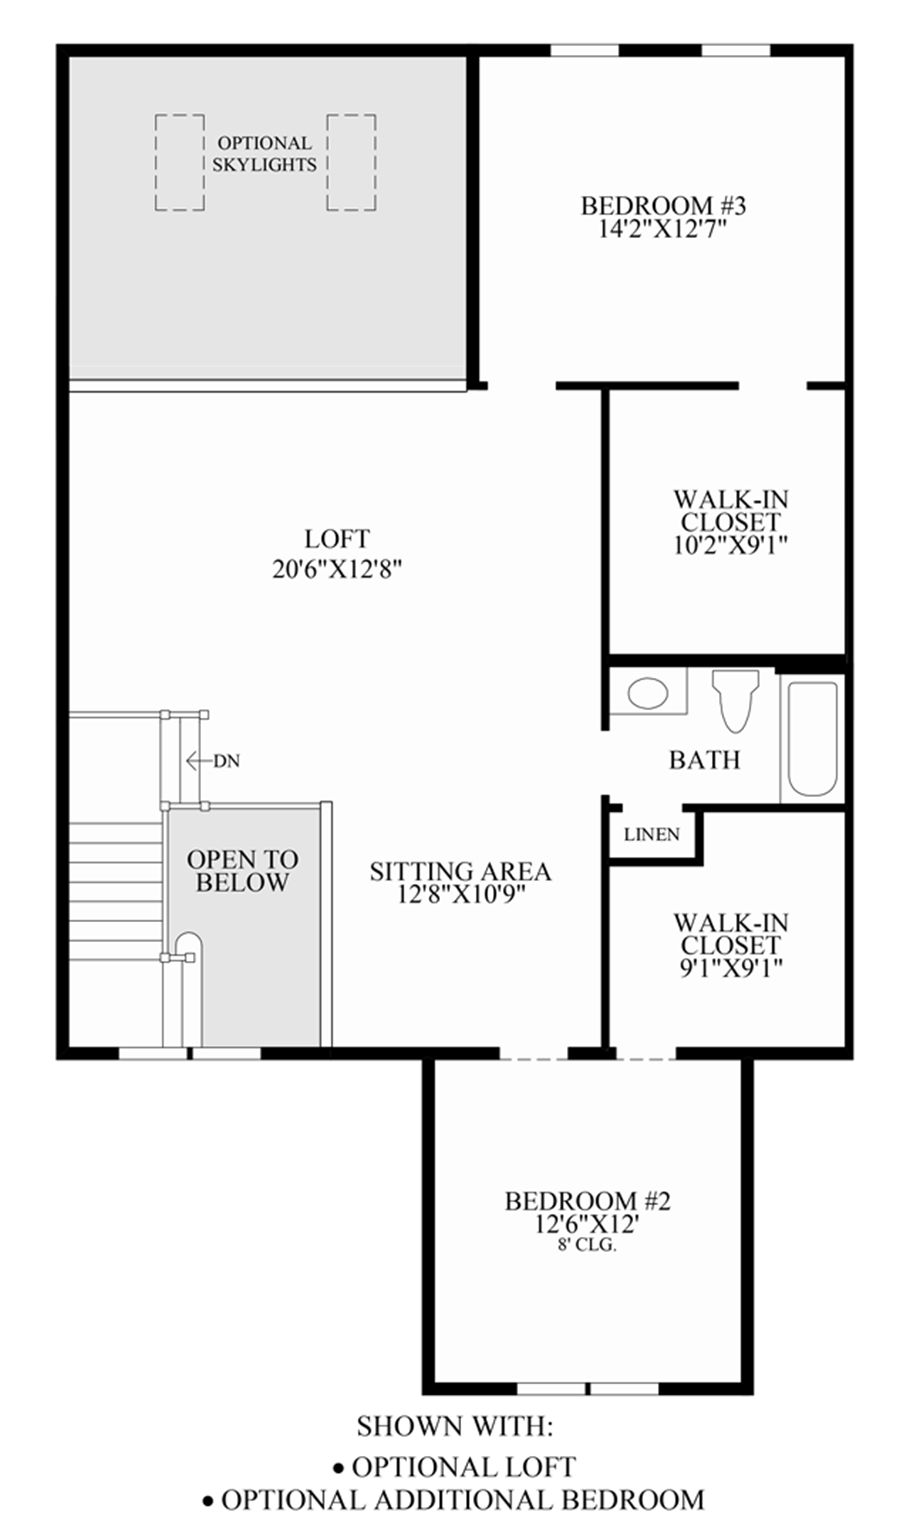 Optional Loft/Additional Bedroom Floor Plan